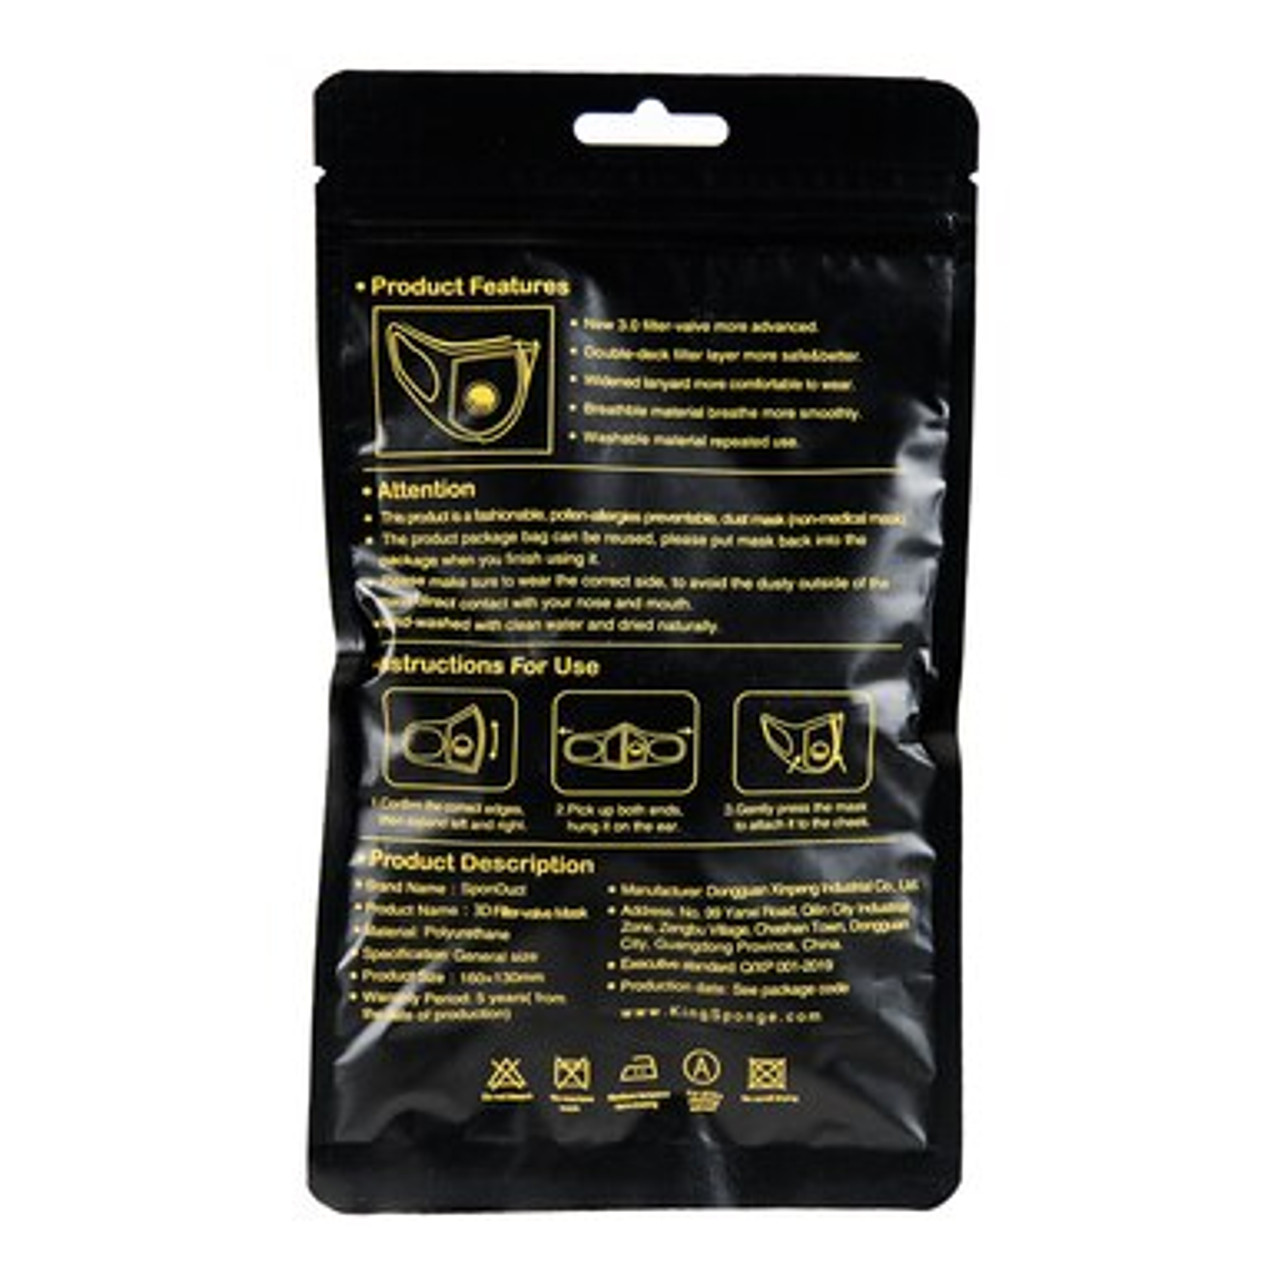 Back of packaging for Black Comfort Sponge Face Mask with Air Valve - 3 Pack with instructions.